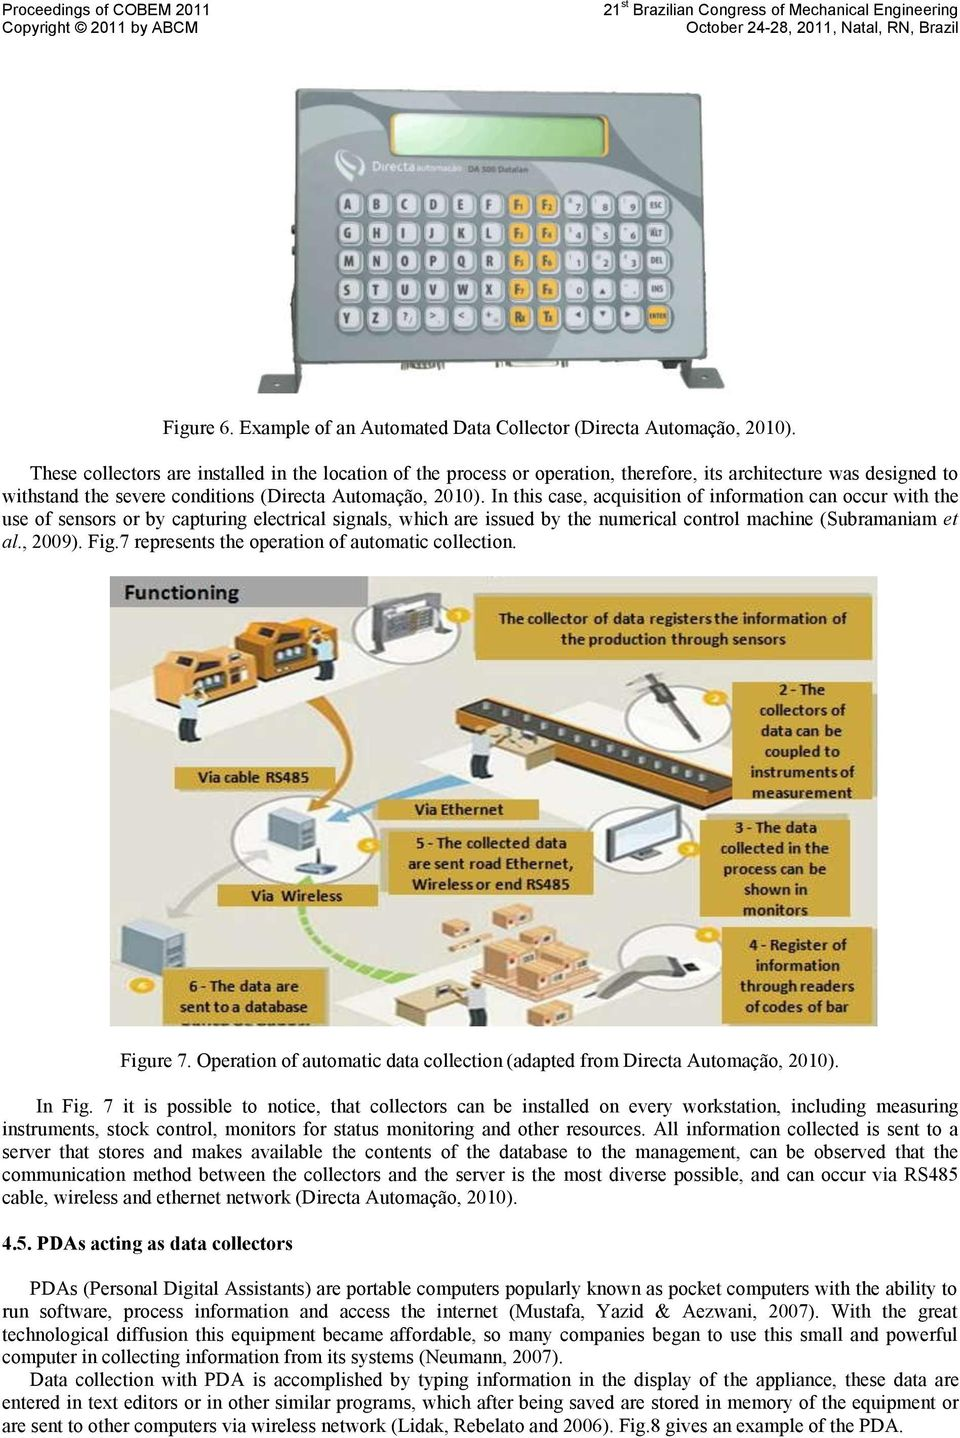 In this case, acquisition of information can occur with the use of sensors or by capturing electrical signals, which are issued by the numerical control machine (Subramaniam et al., 2009). Fig.